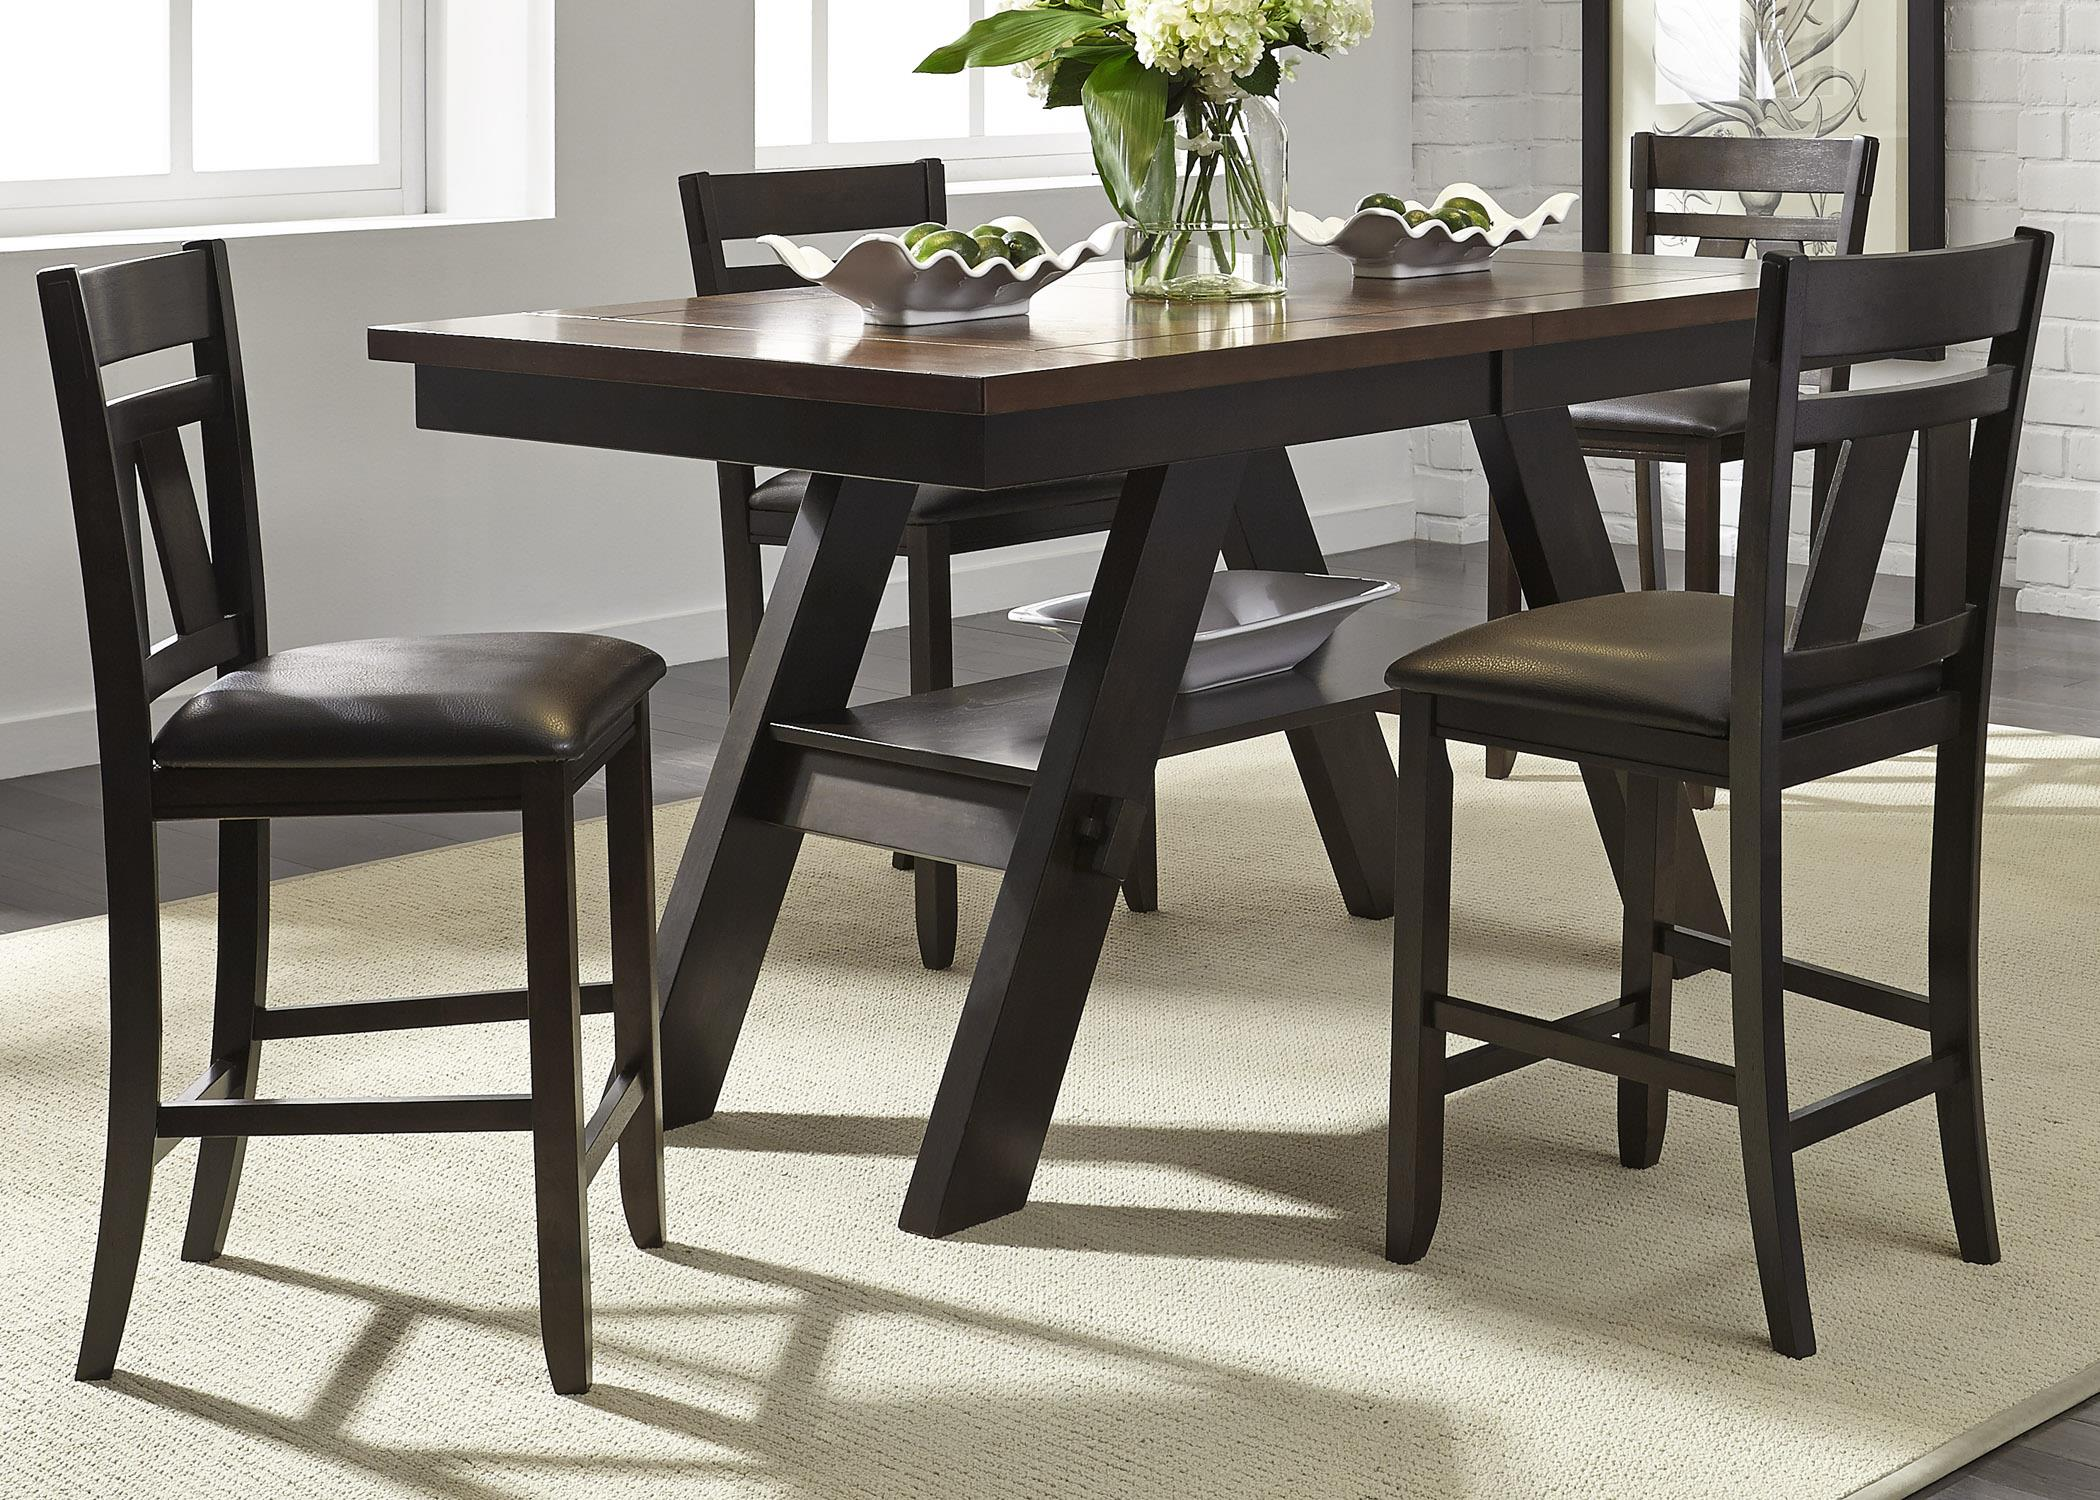 Lawson 5 Piece Gathering Table Set by Liberty Furniture at Darvin Furniture